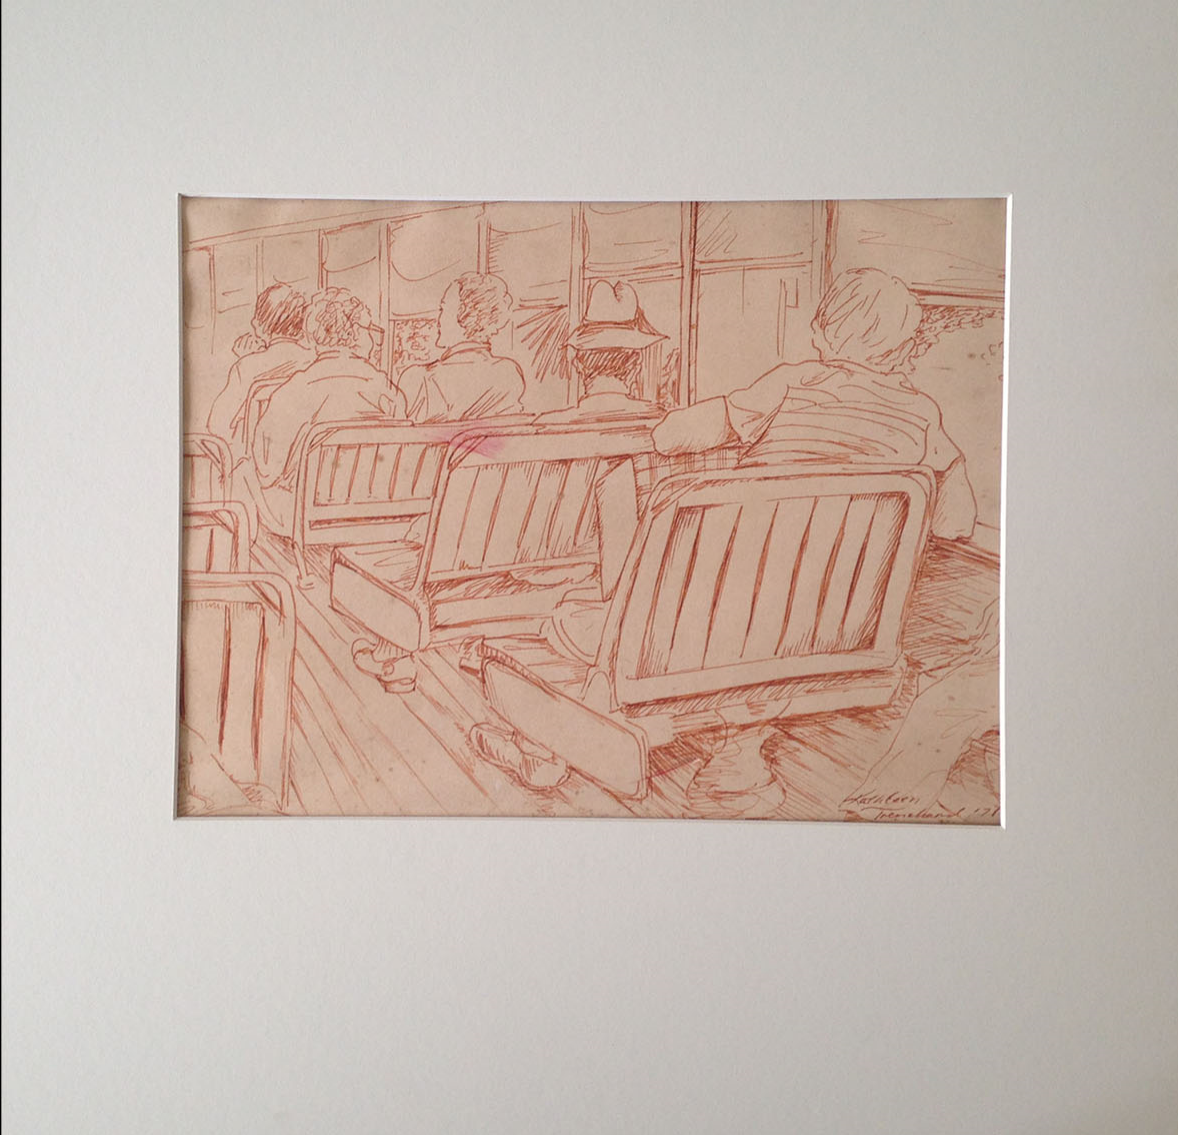 """Two drawings of scenes on the St. Charles Avenue streetcar by Kathleen Trenchard, 16""""X16"""" matted, value: $300 (Donated by Louis & MaryLen Costa)"""